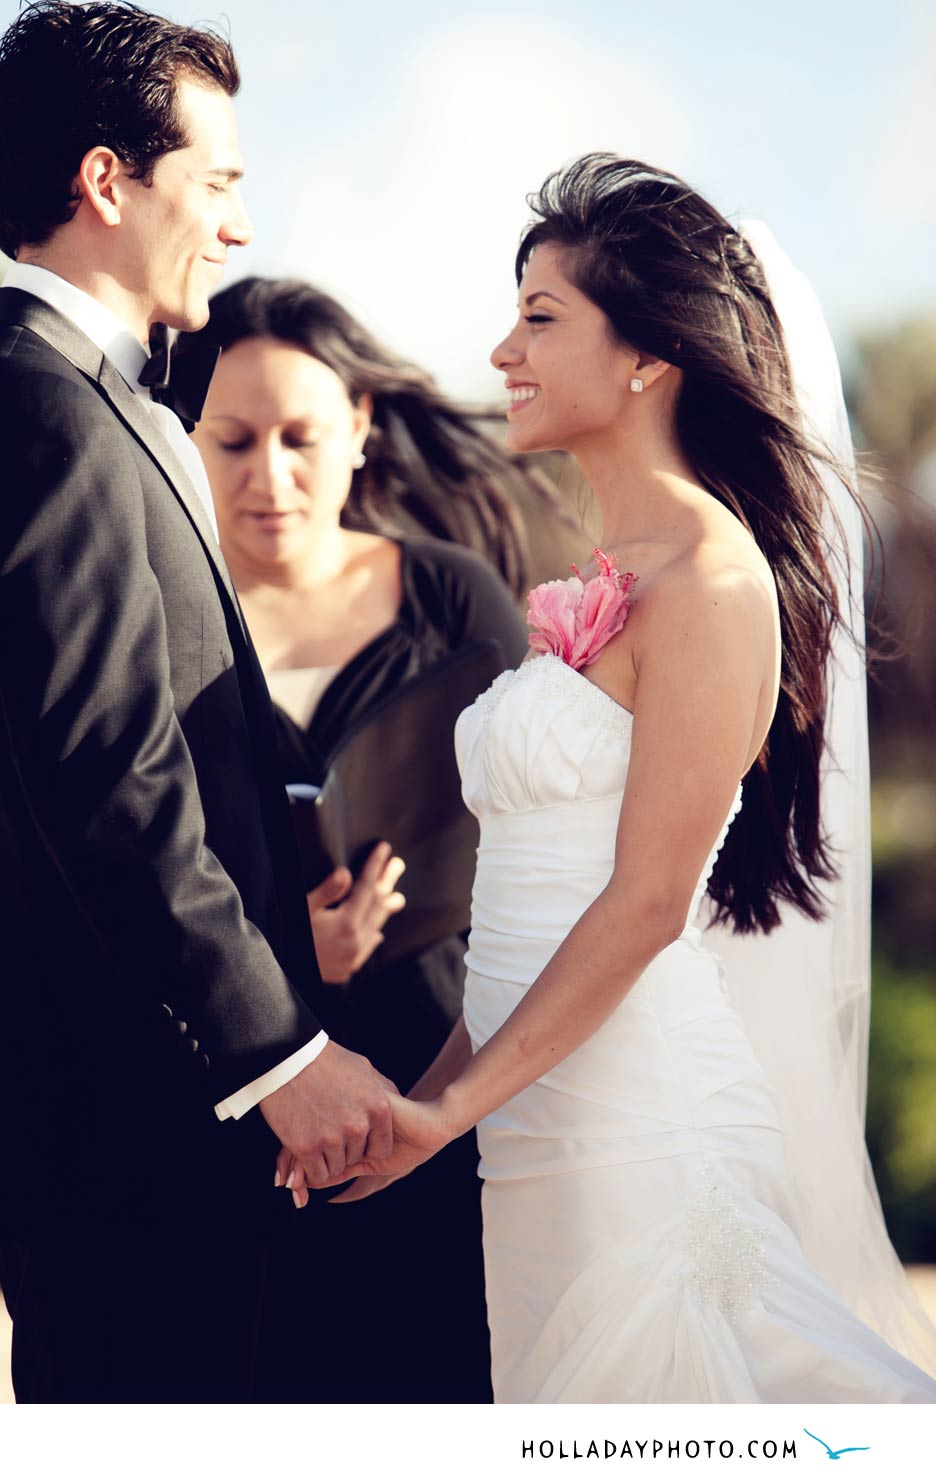 bach-wedding-photograpy-hawaii-1